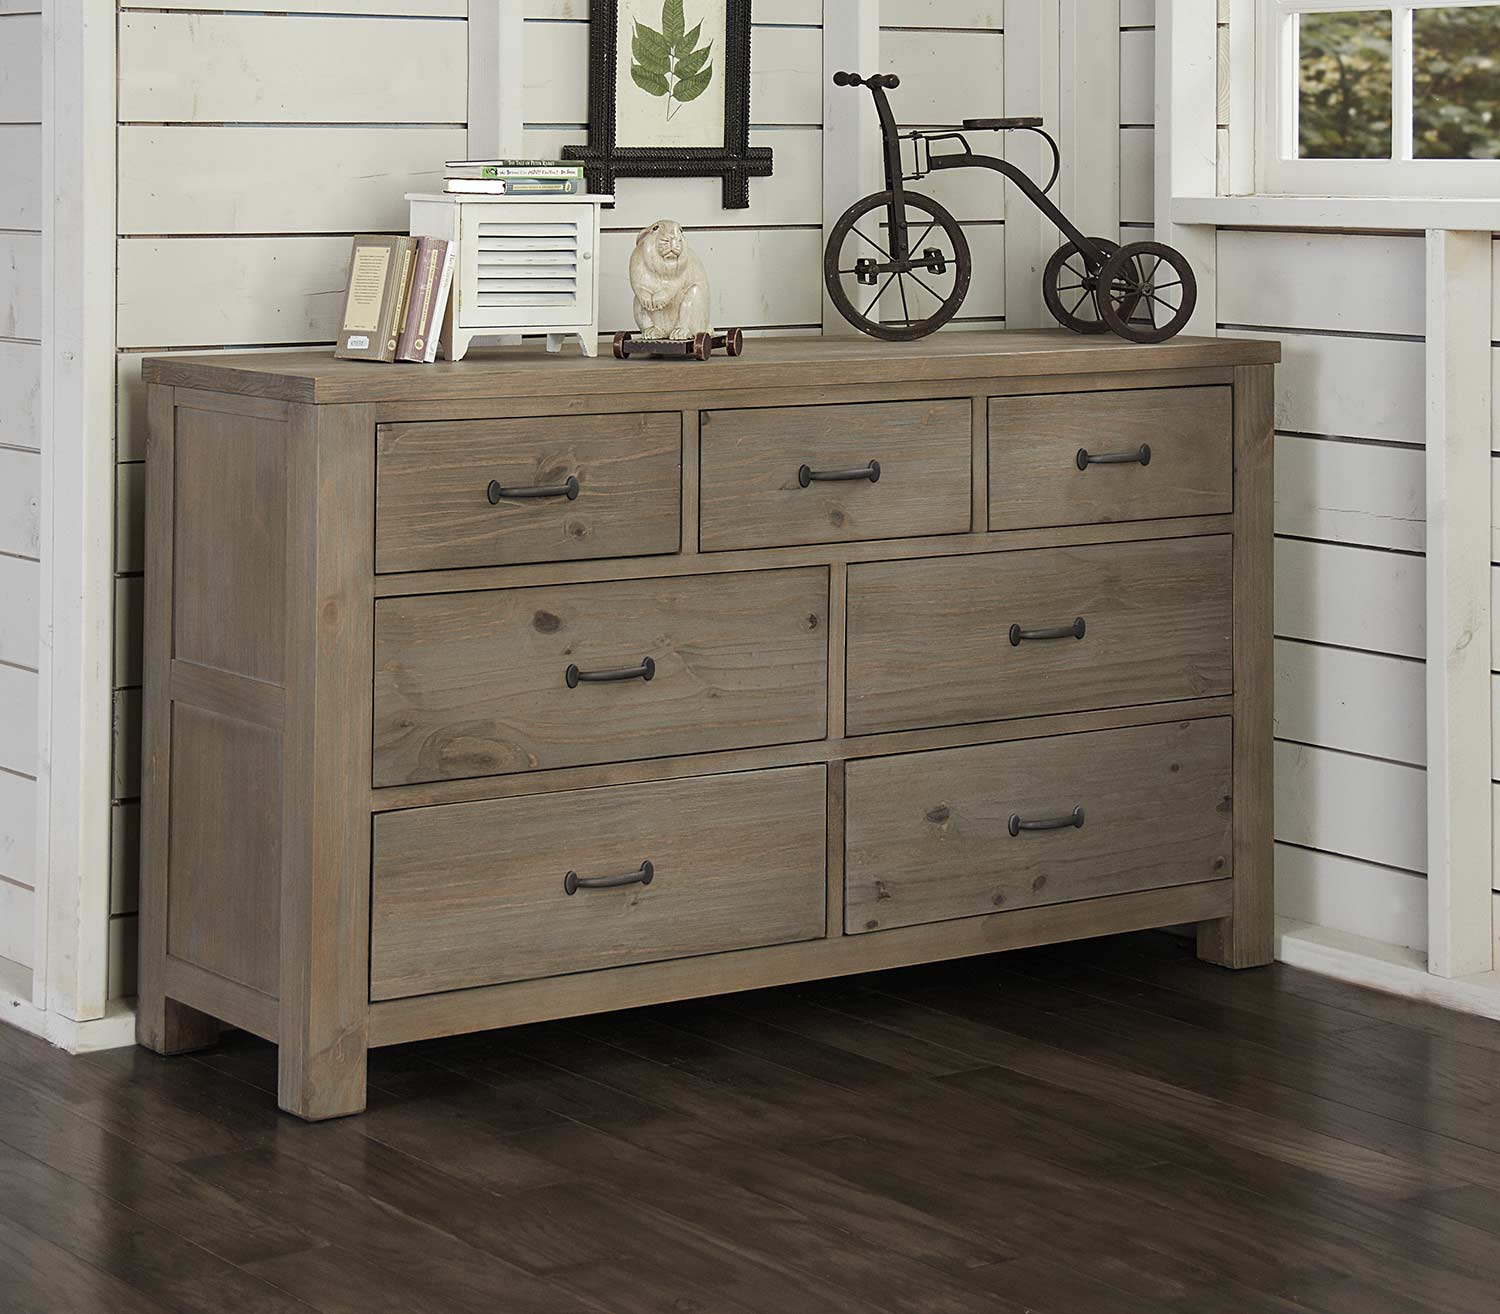 NE Kids Highlands 7 Drawer Dresser - Driftwood